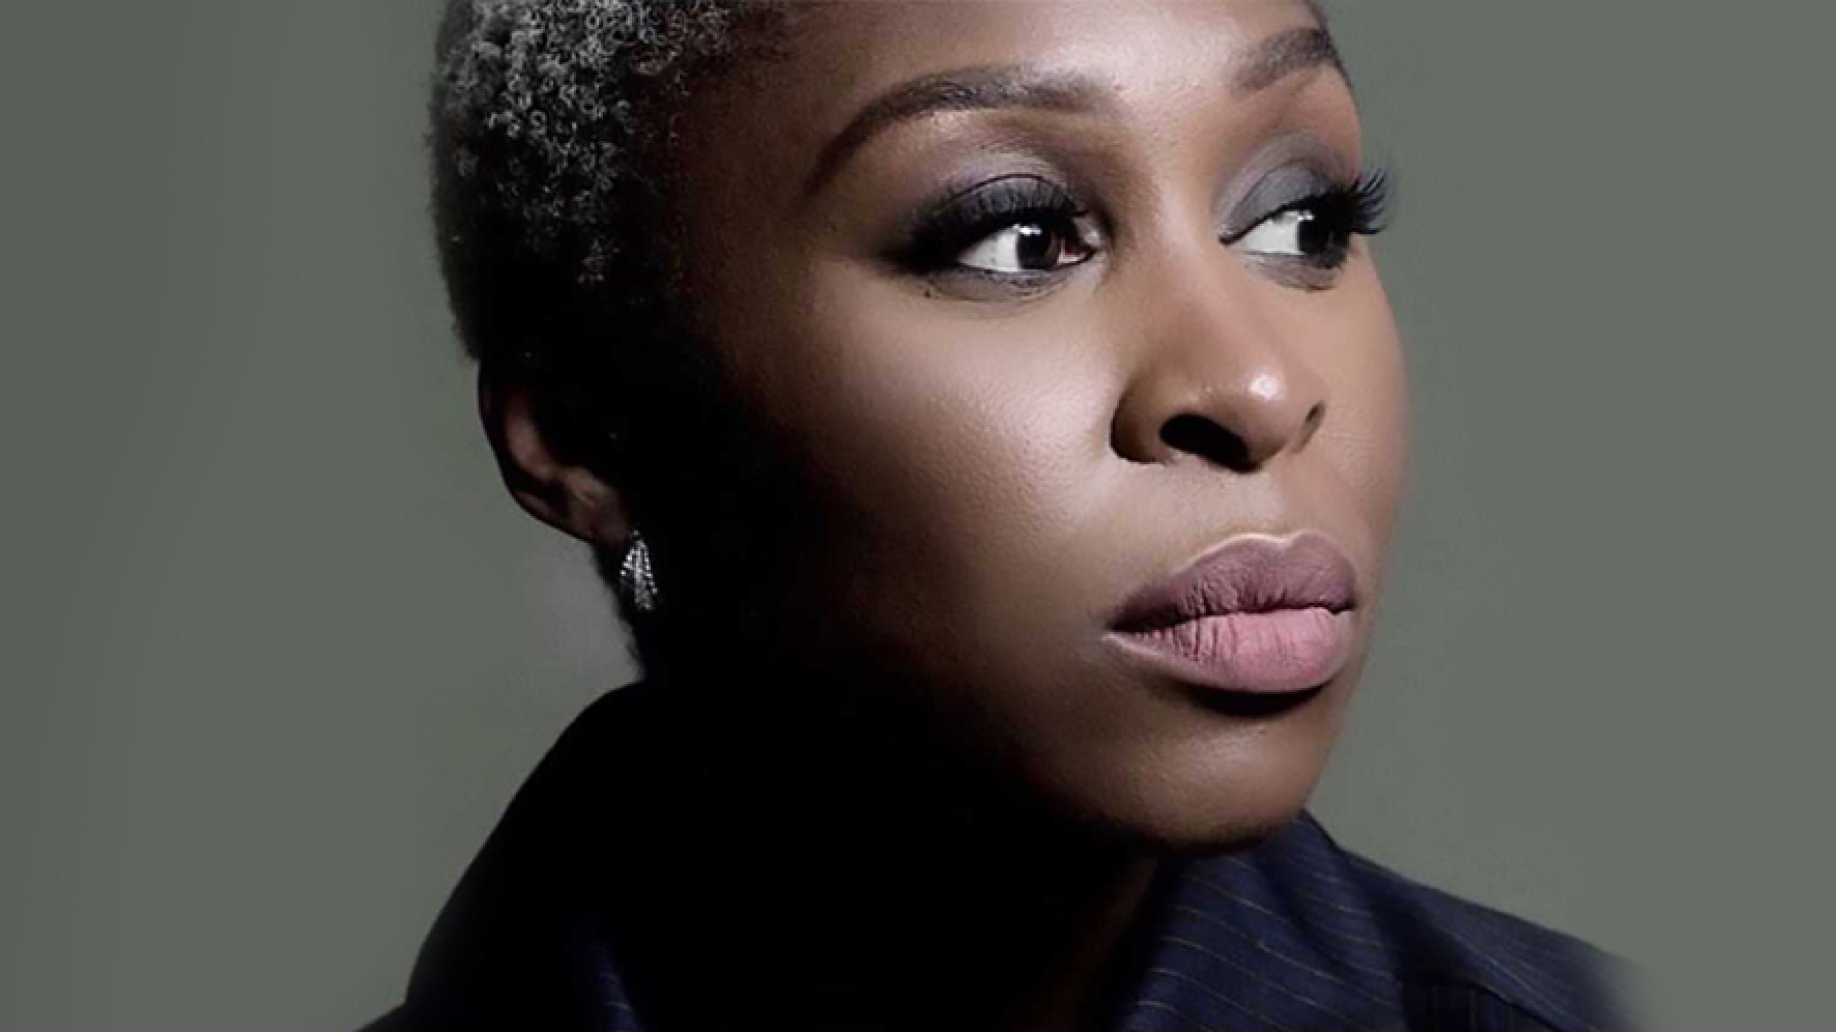 Cynthia Erivo Thursday, December 20 at 7:30 & 9:30 pm